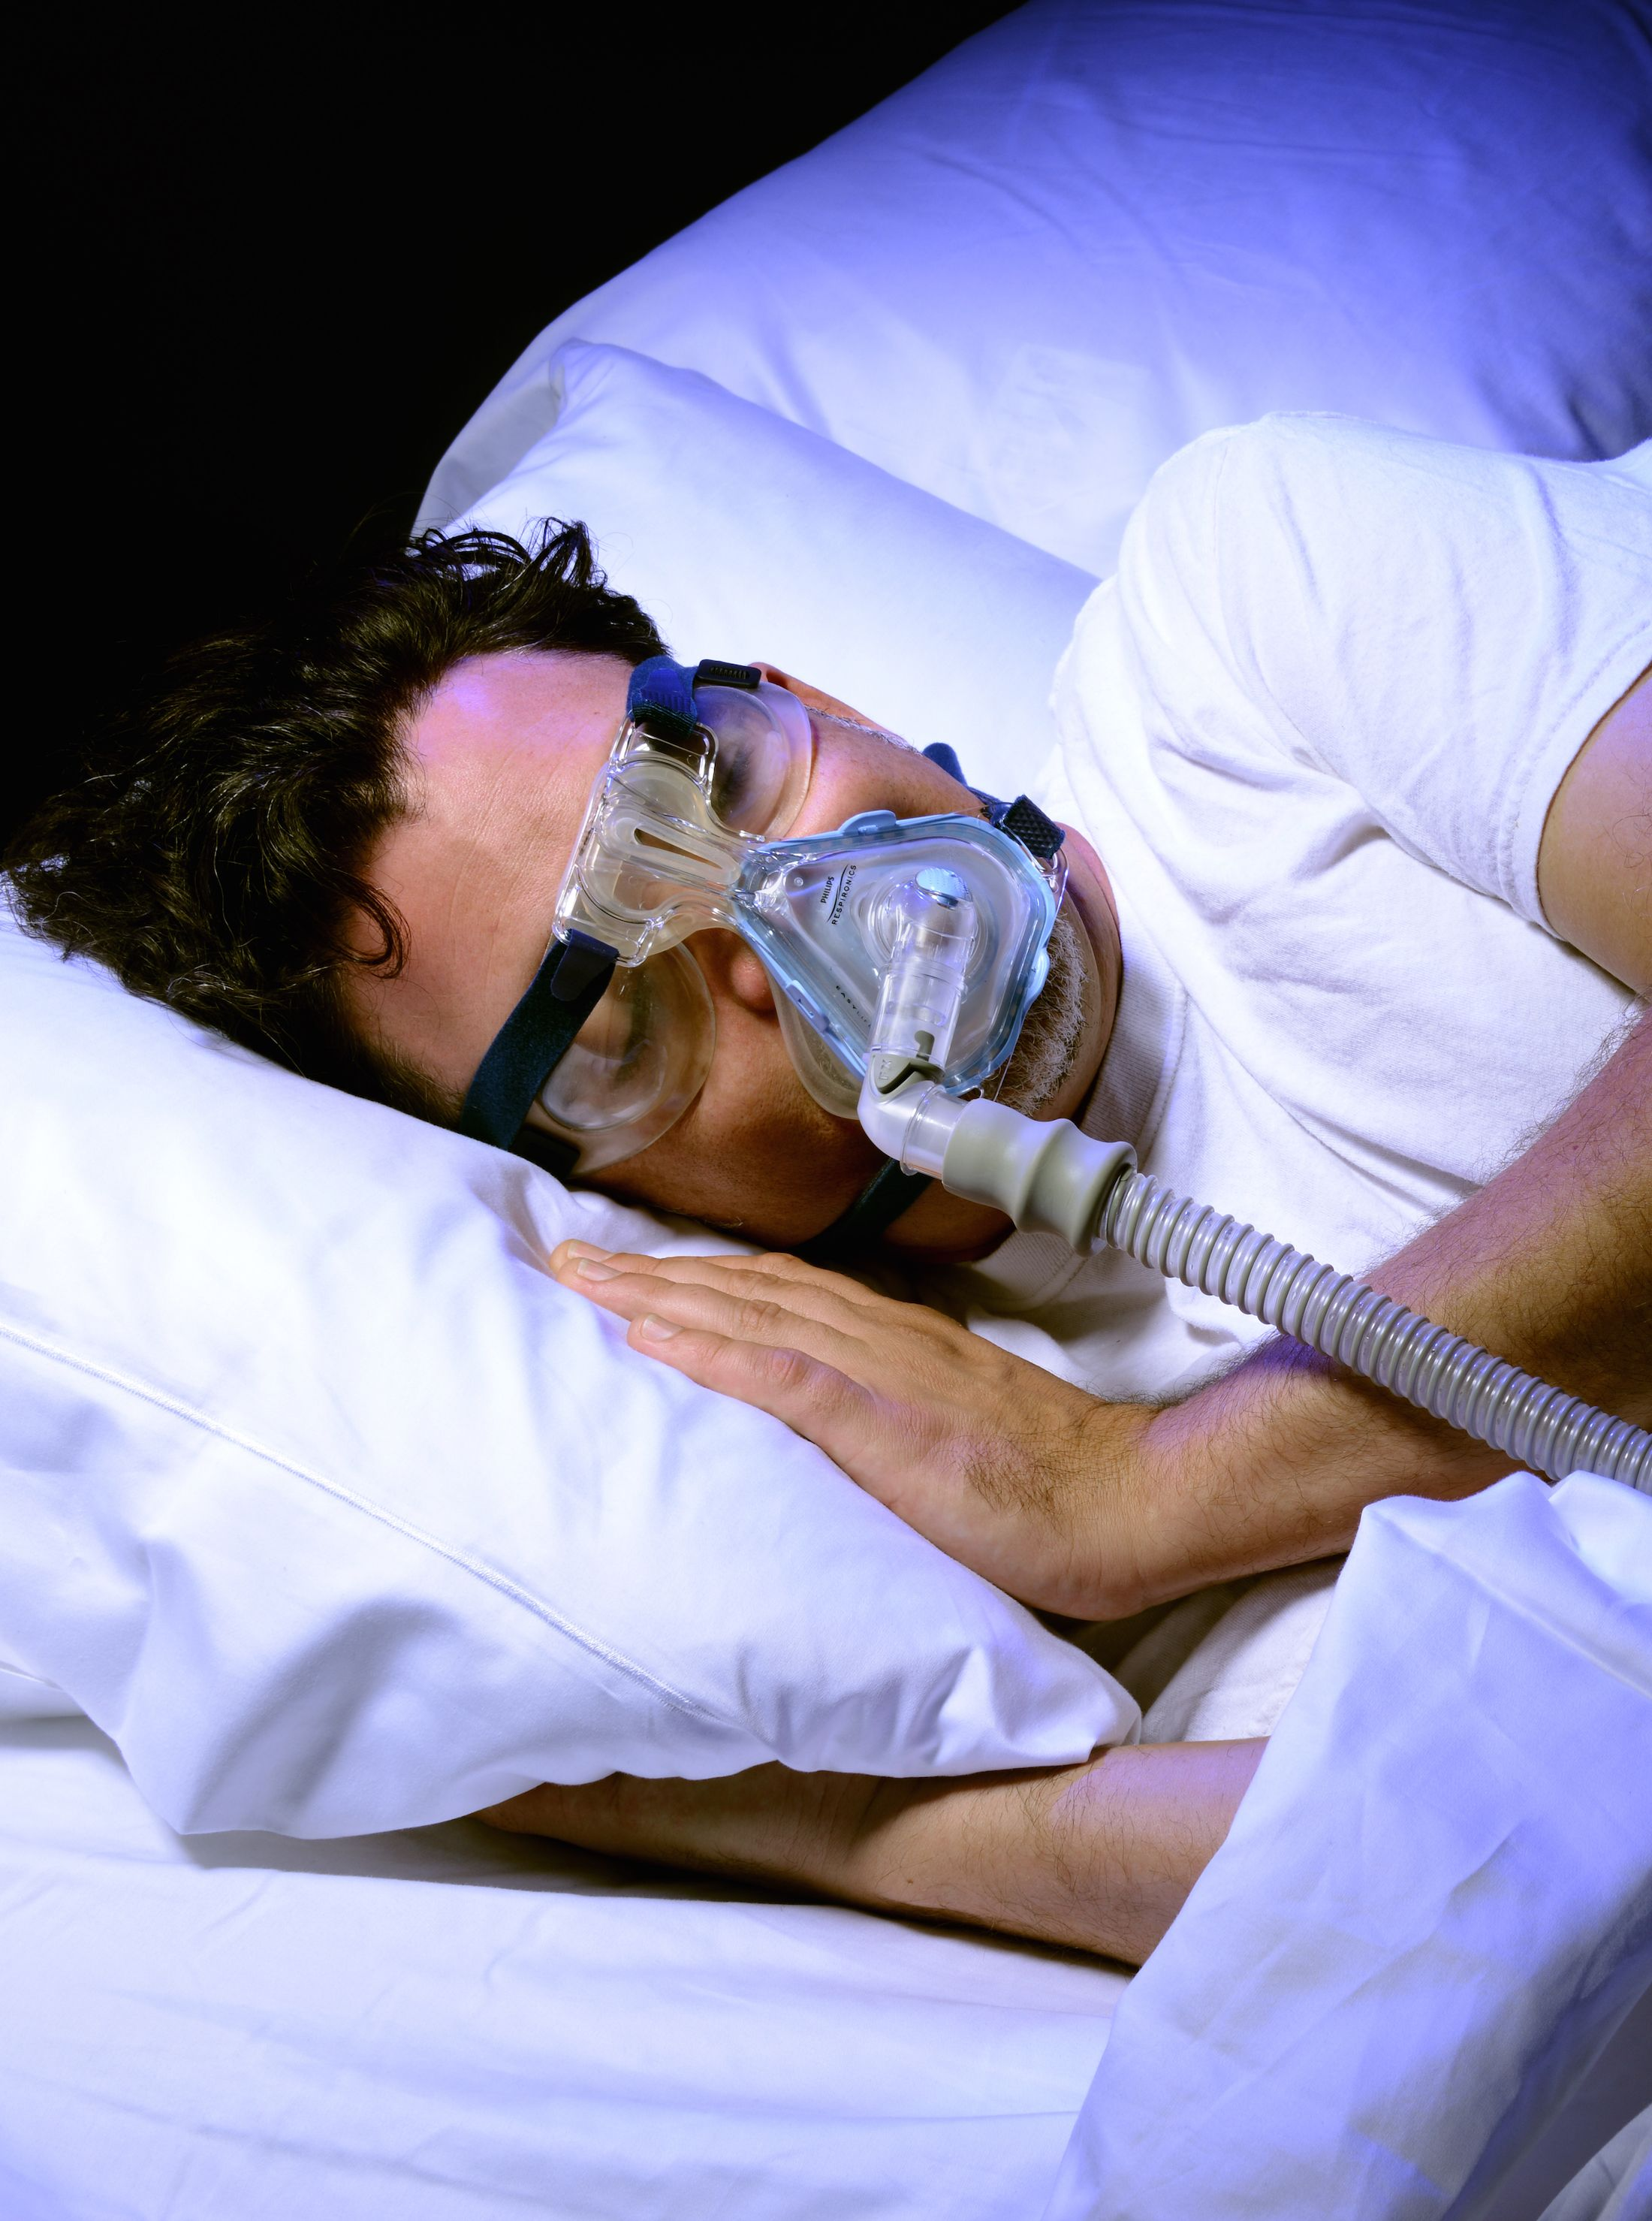 Dry Eye Relief For Cpap Users Use Of A Cpap Machine Is Often A Recipe For Dry Eyes Mask Edge Air Leaks Can Lead To Consta Dry Eyes Relief Dry Eyes